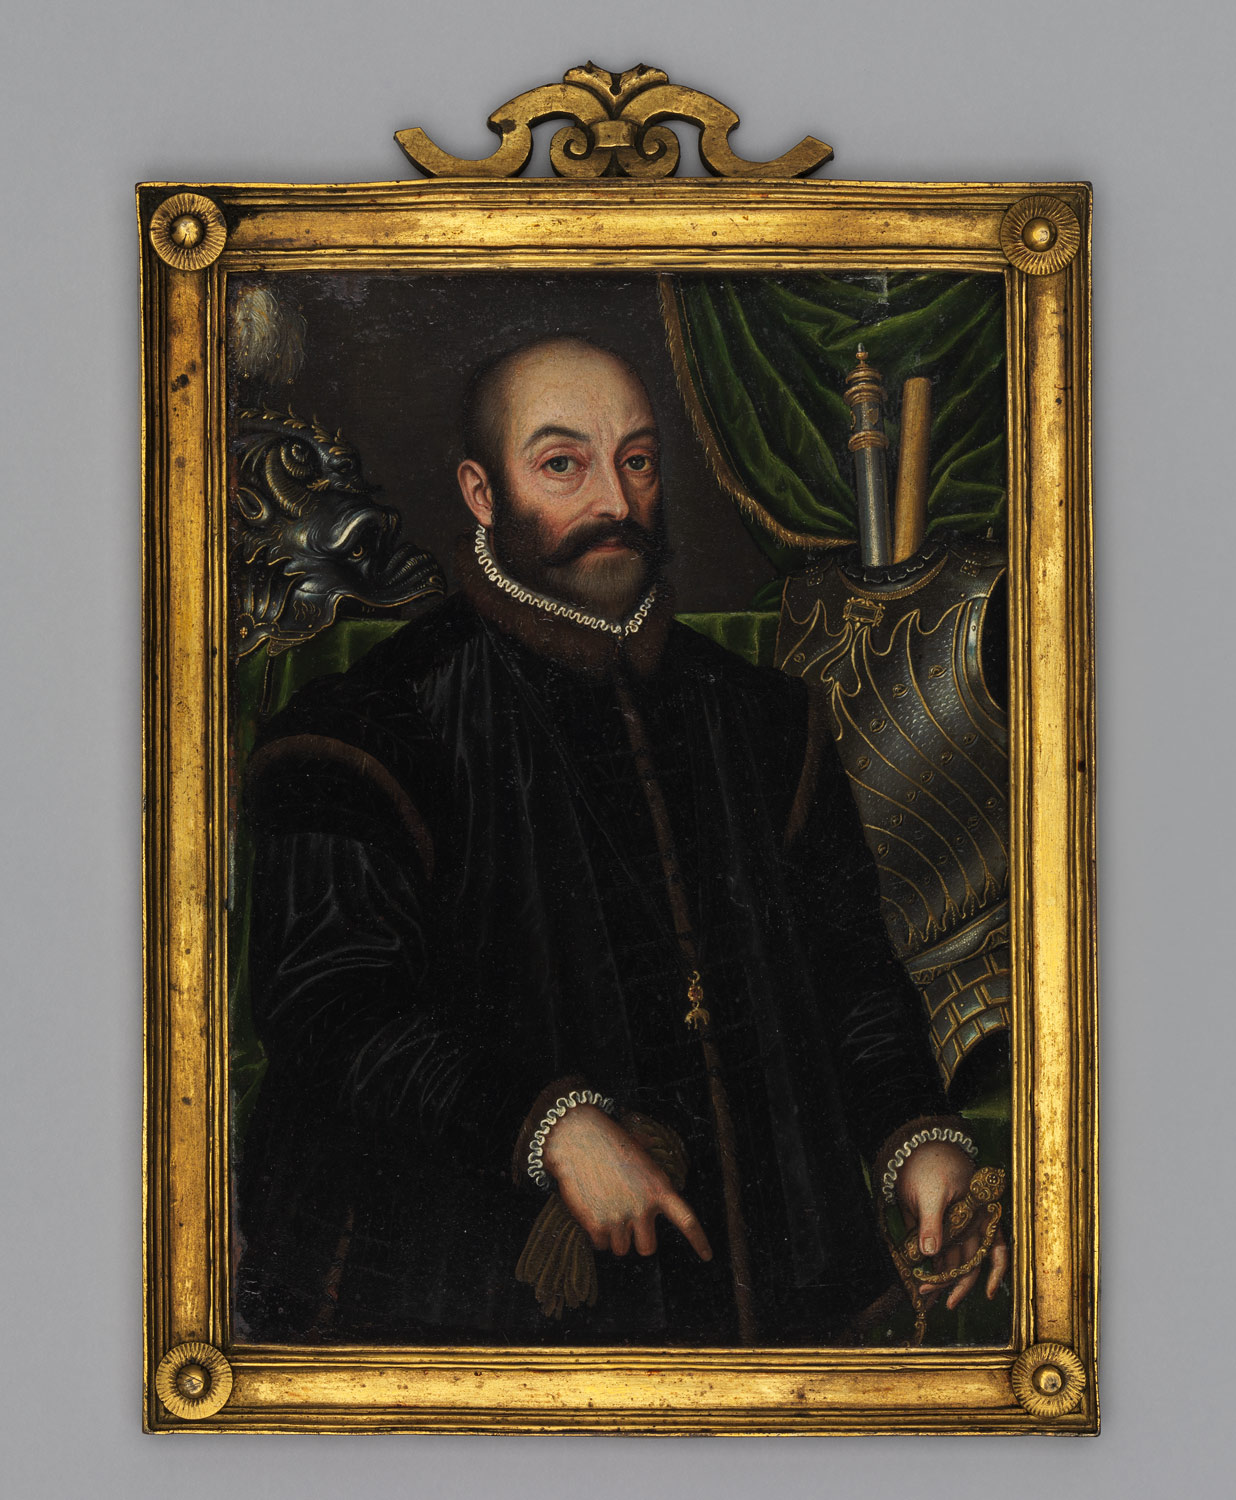 Guidobaldo II della Rovere, Duke of Urbino (1514–1574), With his  Armor by Filippo Negroli